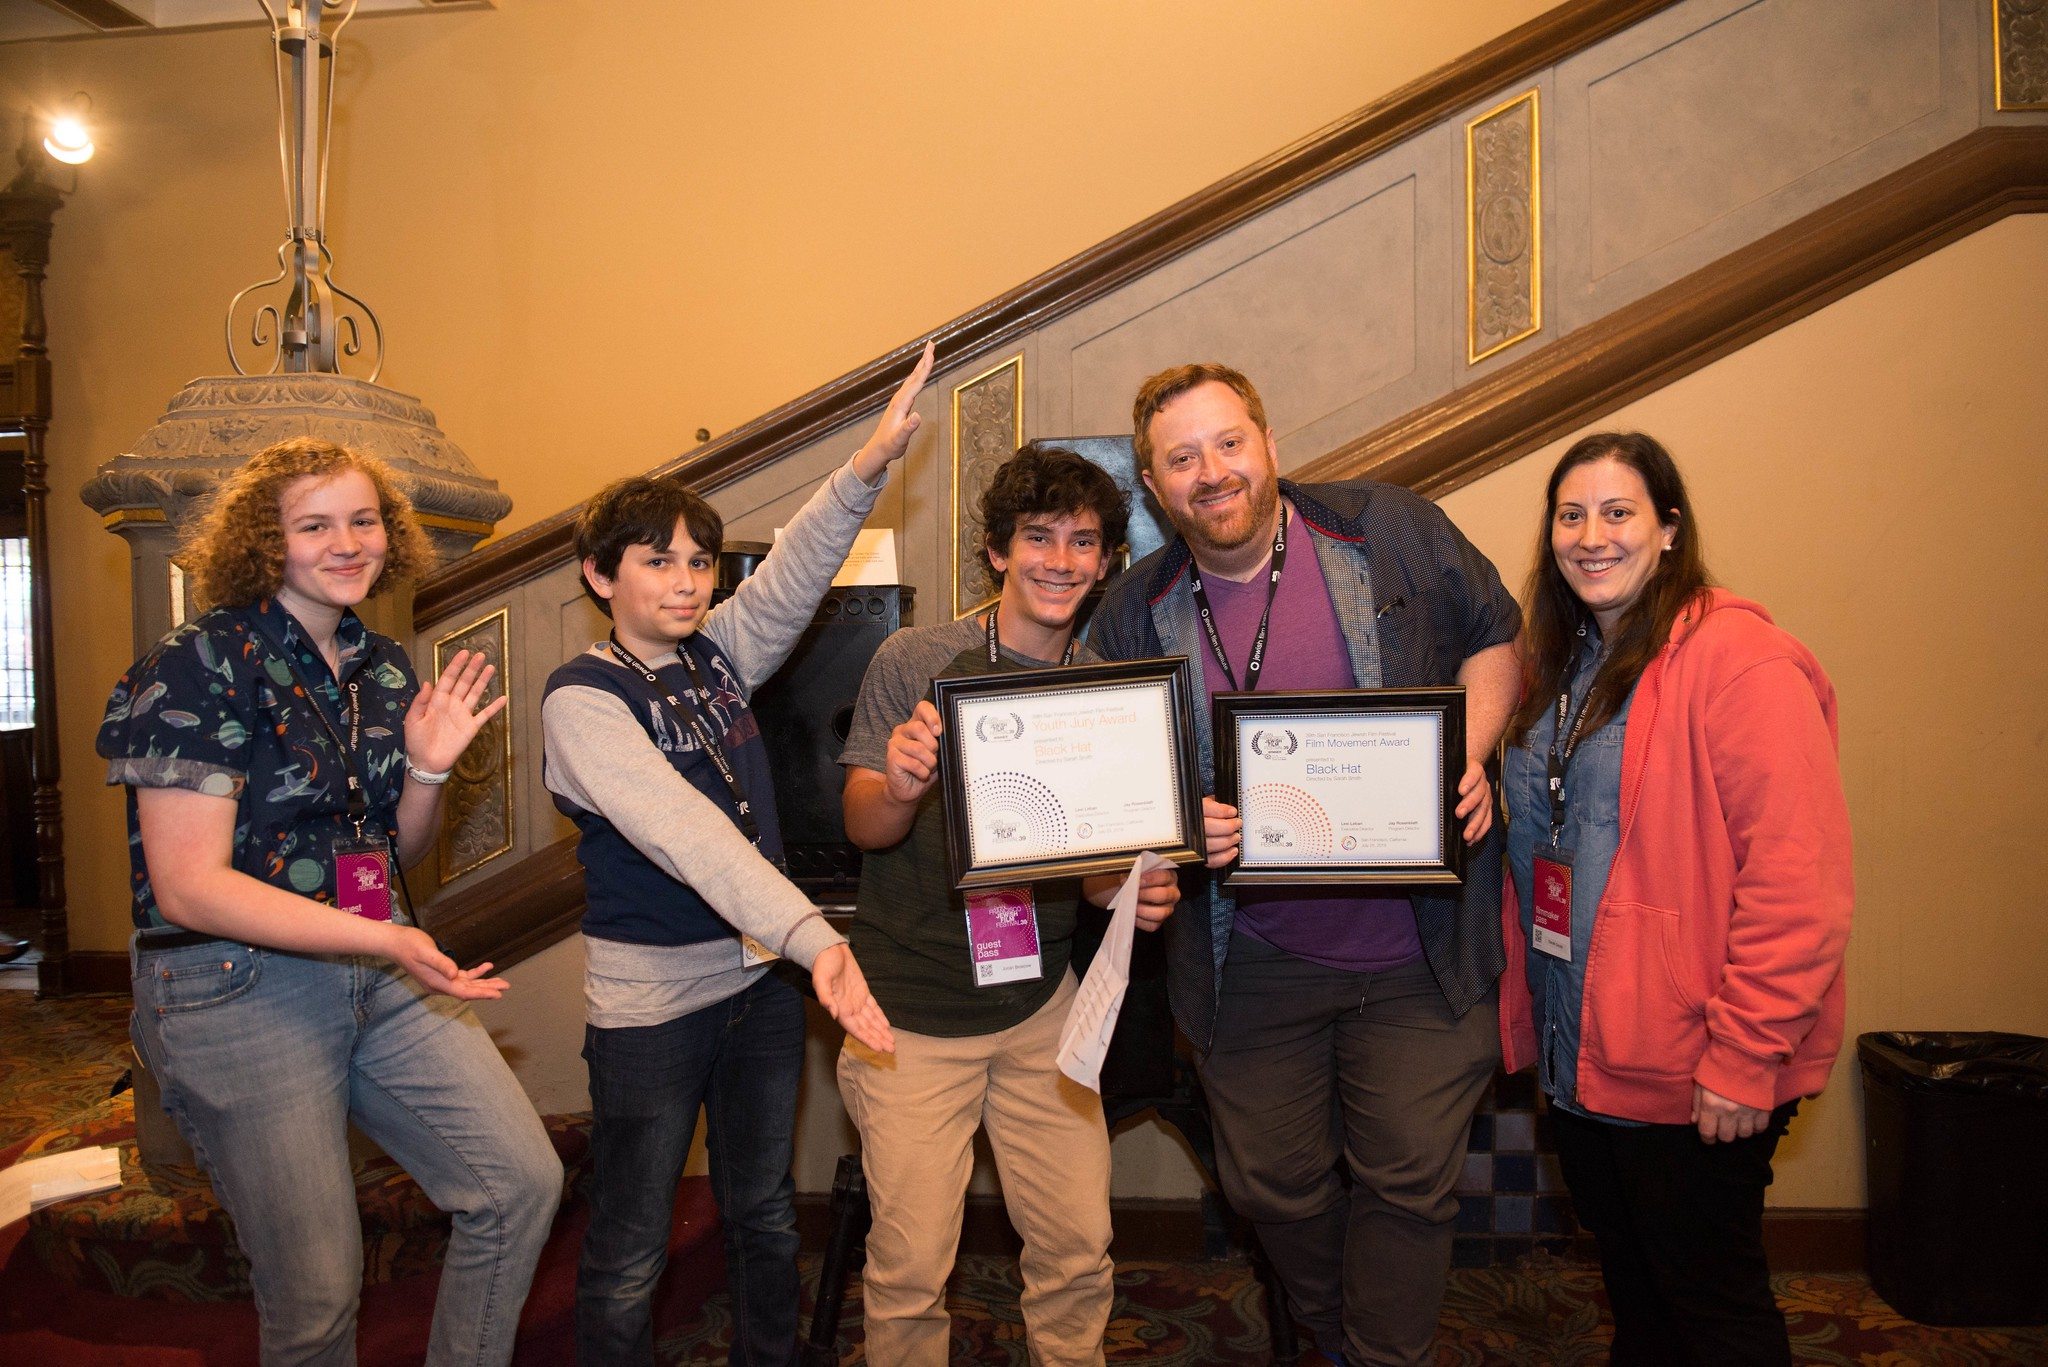 SFJFF39 Youth Jury presents the award to BLACK HAT filmmakers